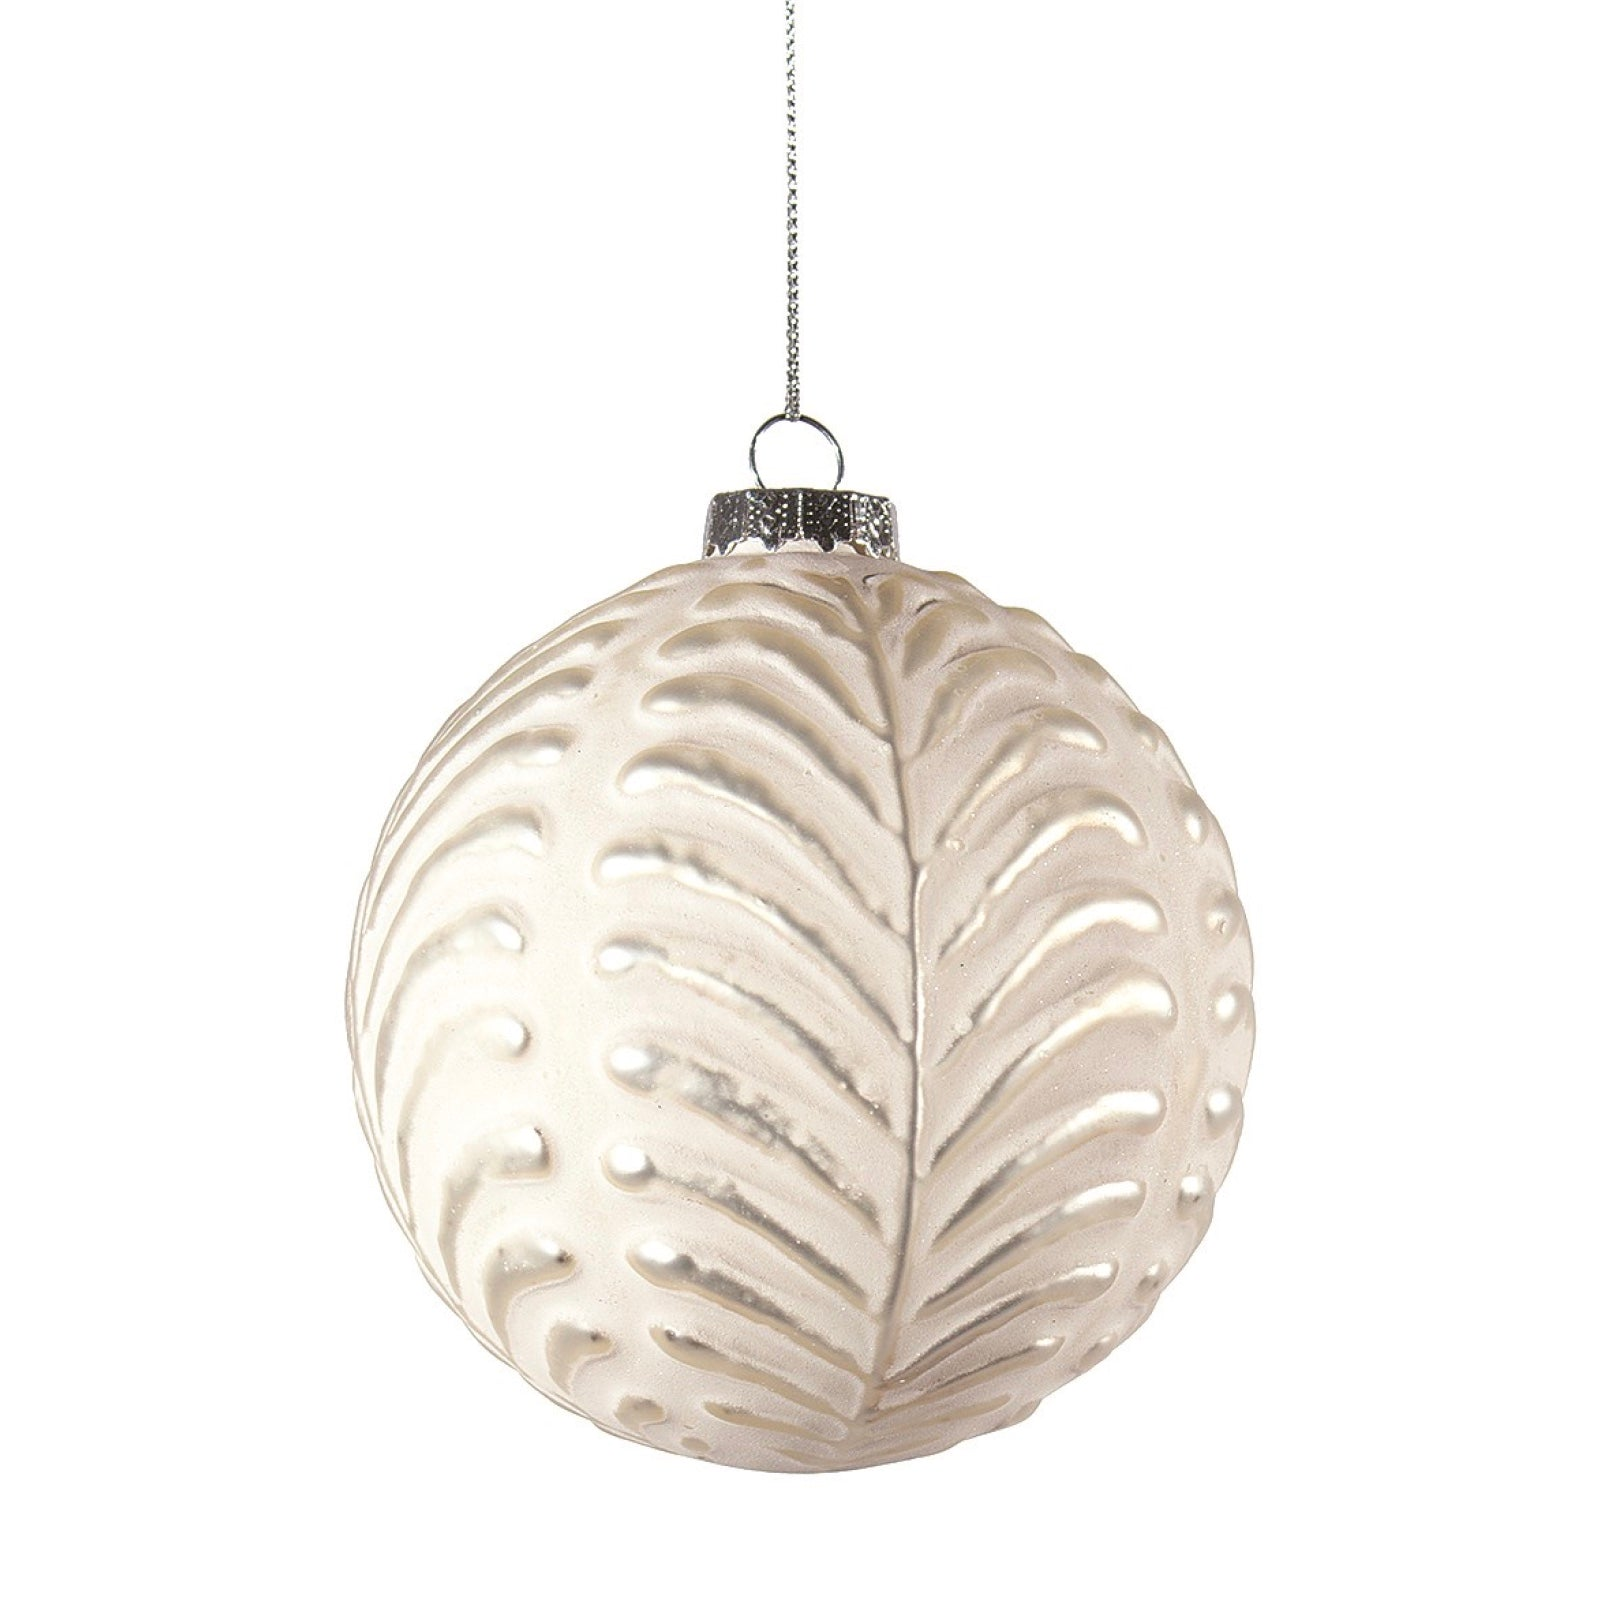 Matte White with Silver Leaf Glass Ornament